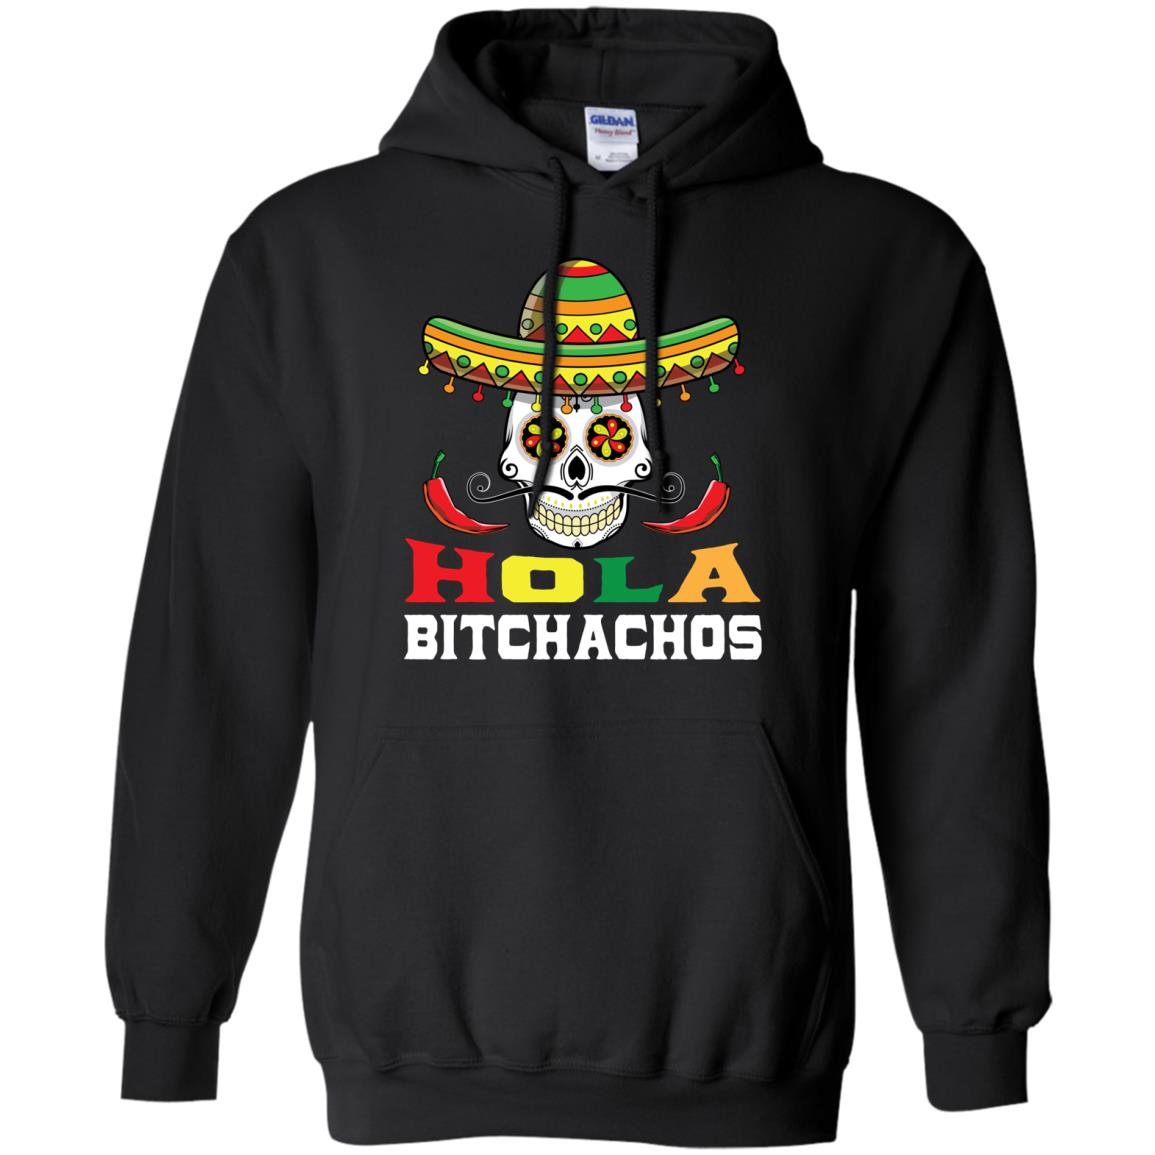 Cinco de mayo hola bitchachos t shirt for men women gifts